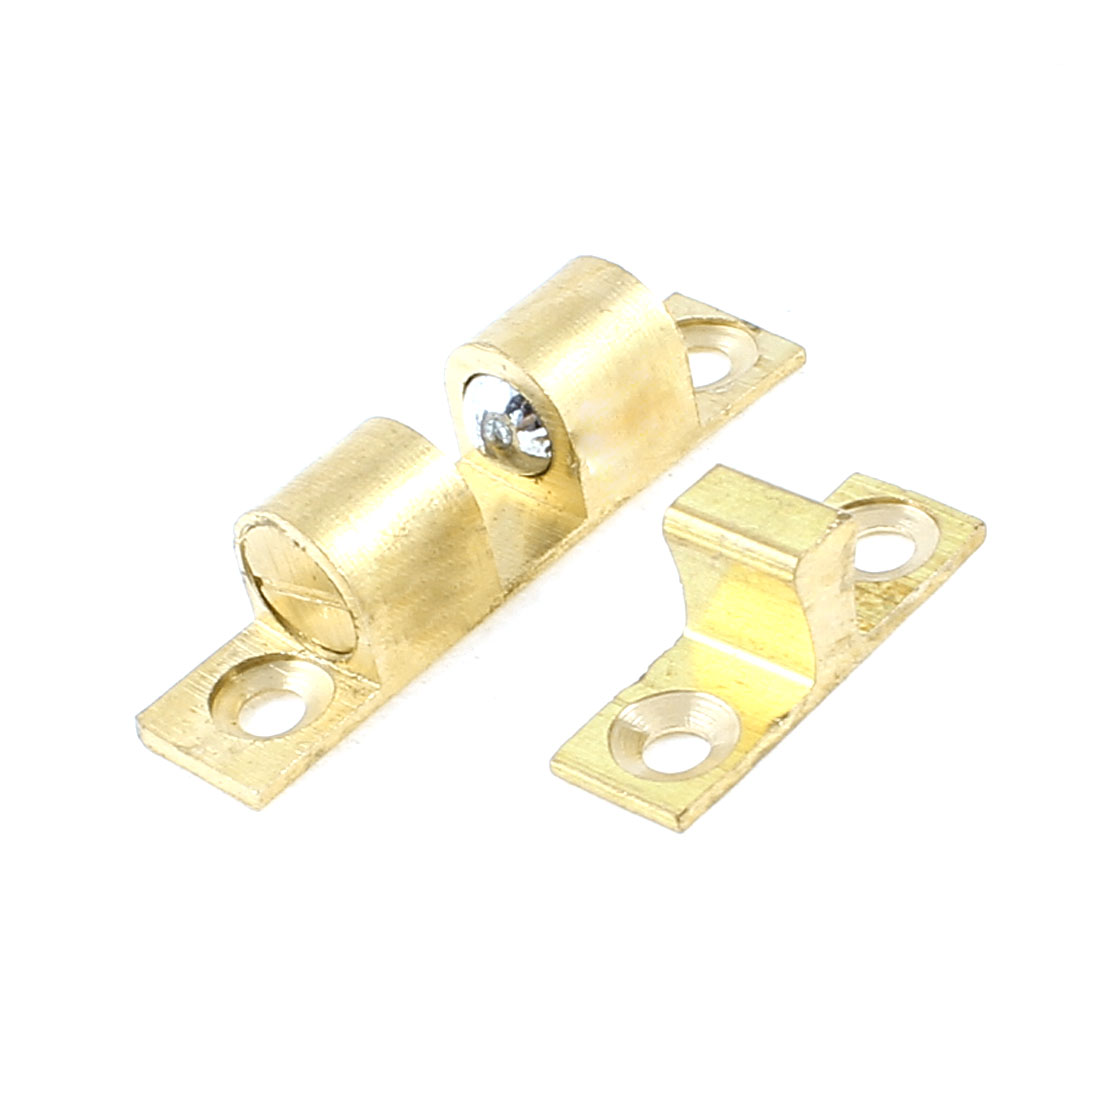 Cupboard Cabinet Brass Double Ball Catch 40mm Long Door Latch